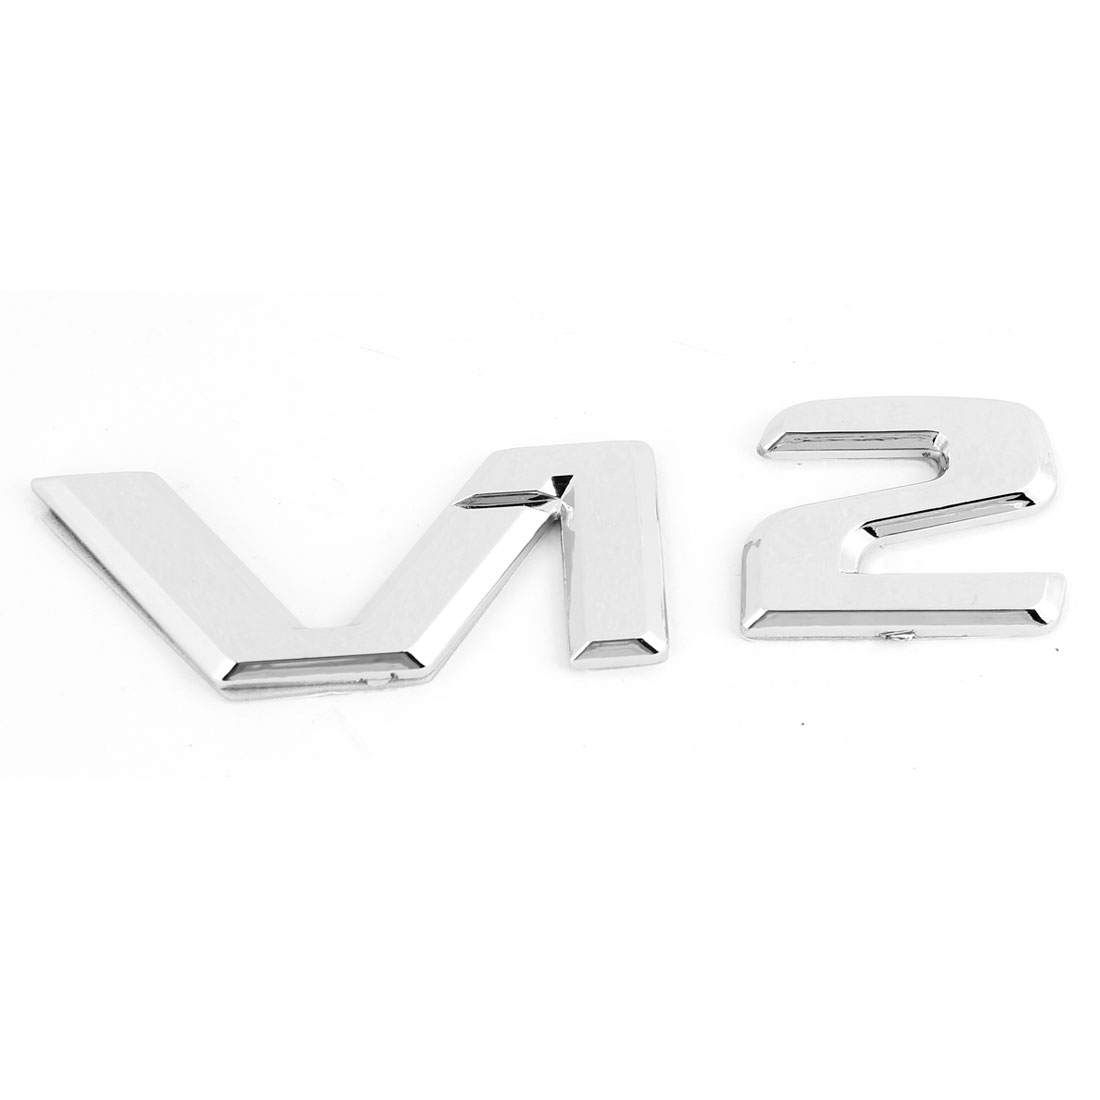 Silver Tone Plastic Adhesive V12 Pattern Car Badge Sticker Emblem Decor